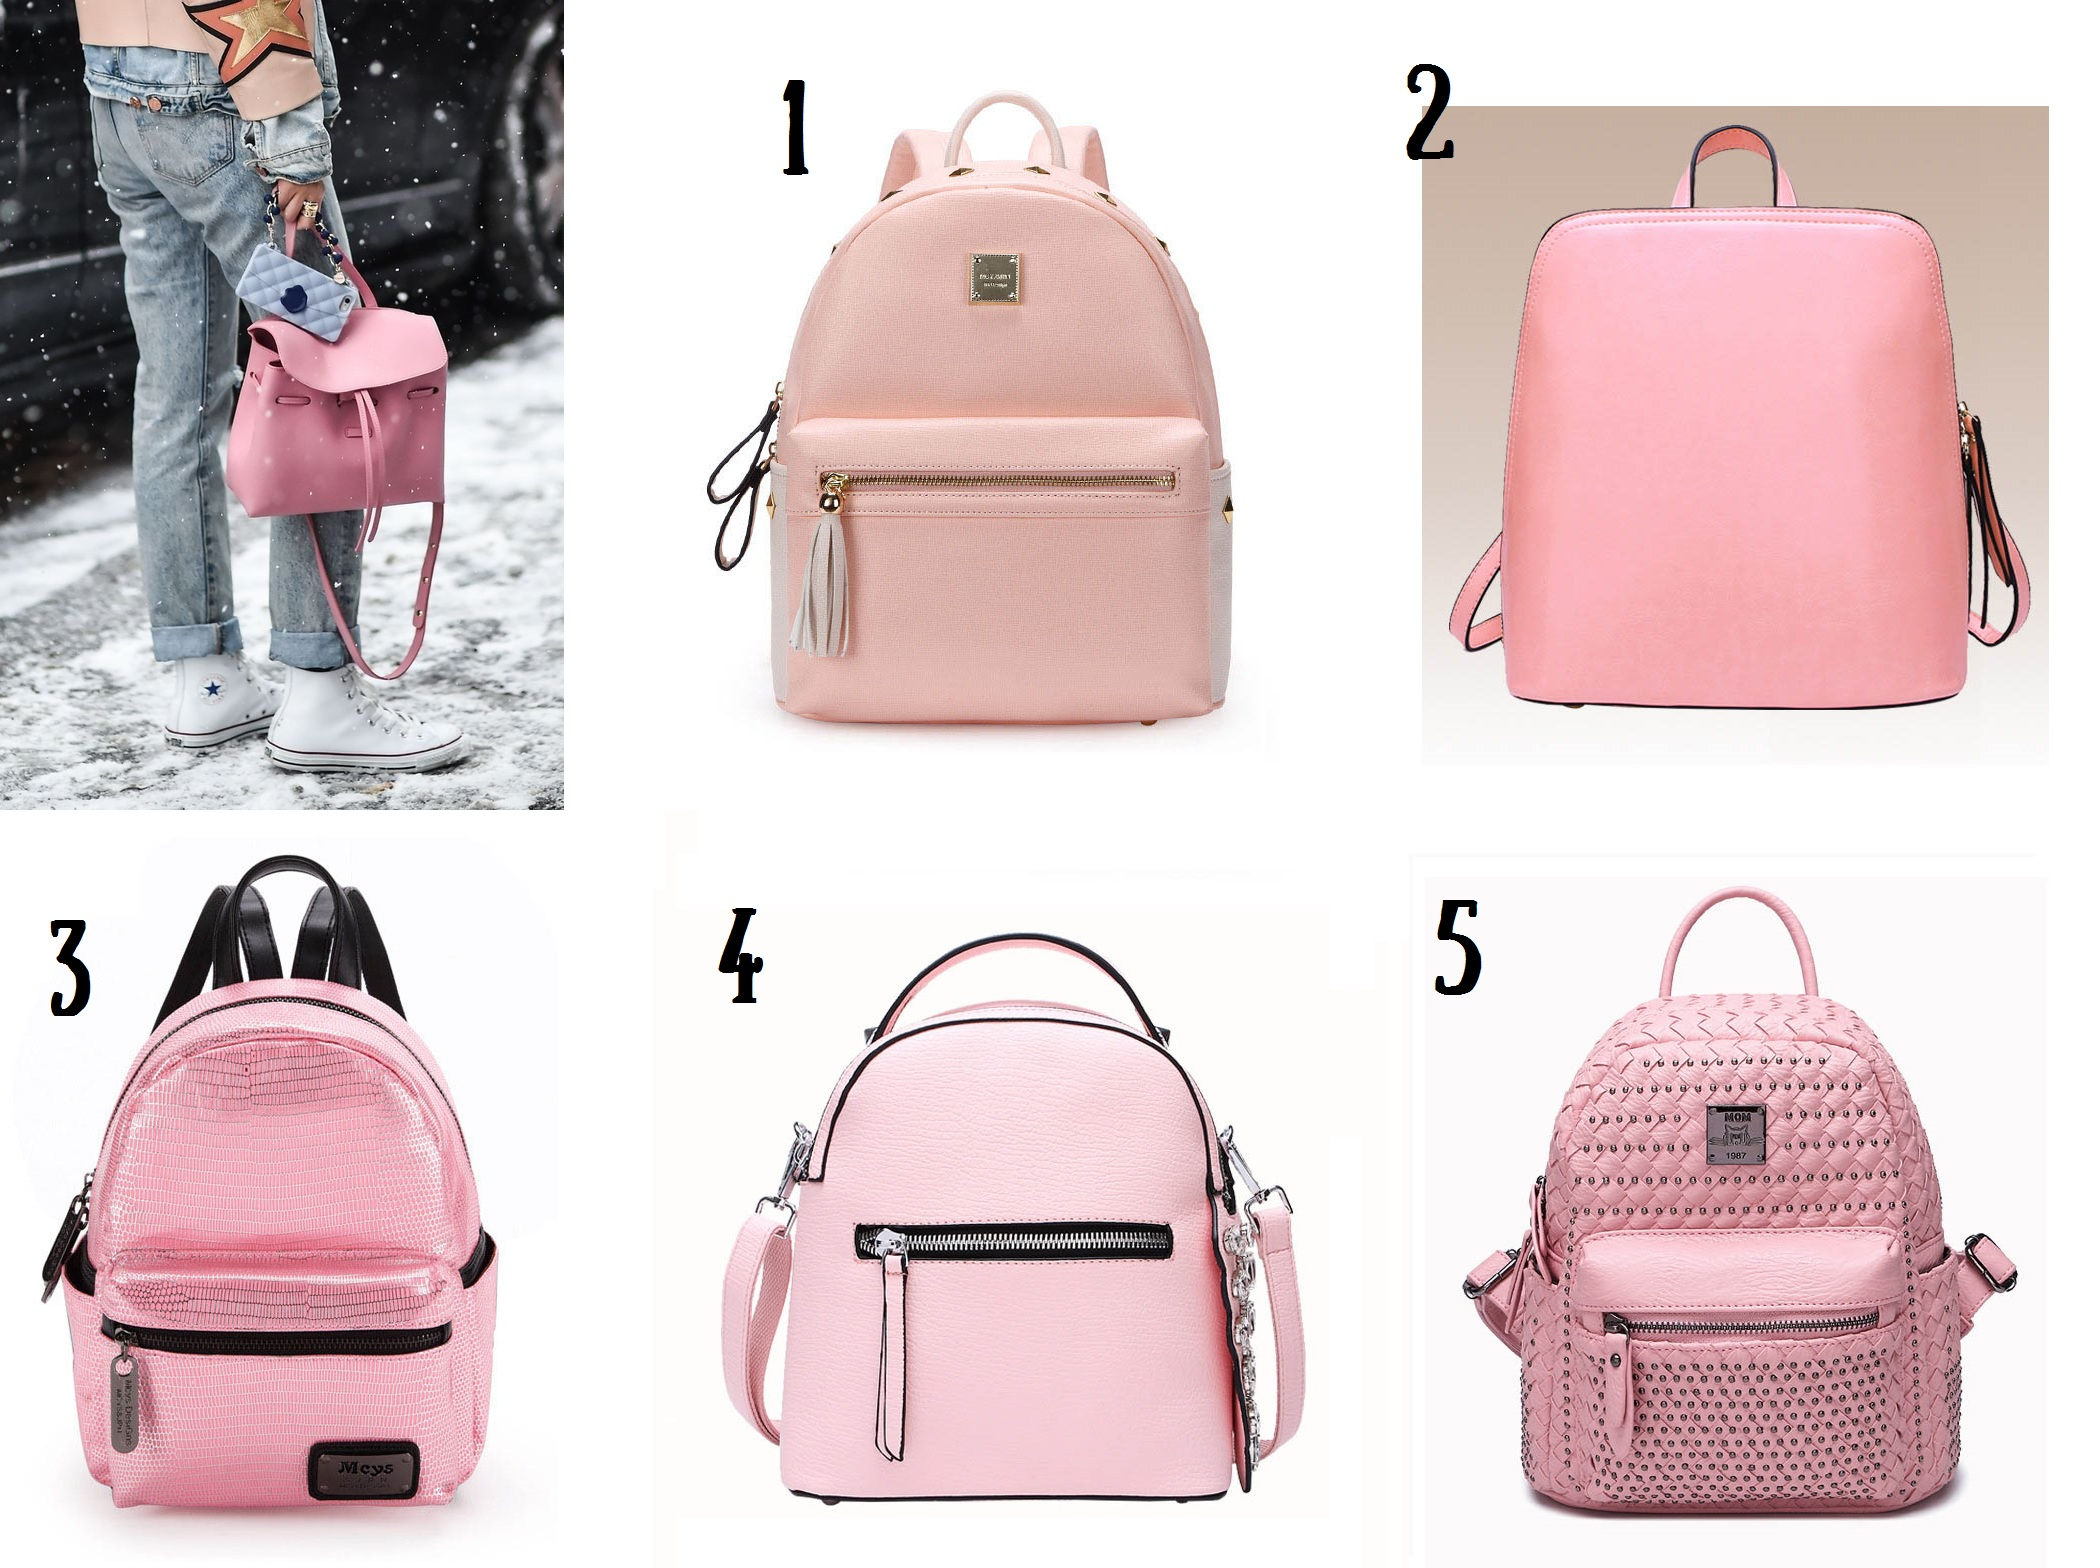 pink-backpack-pink-pepper-paradise